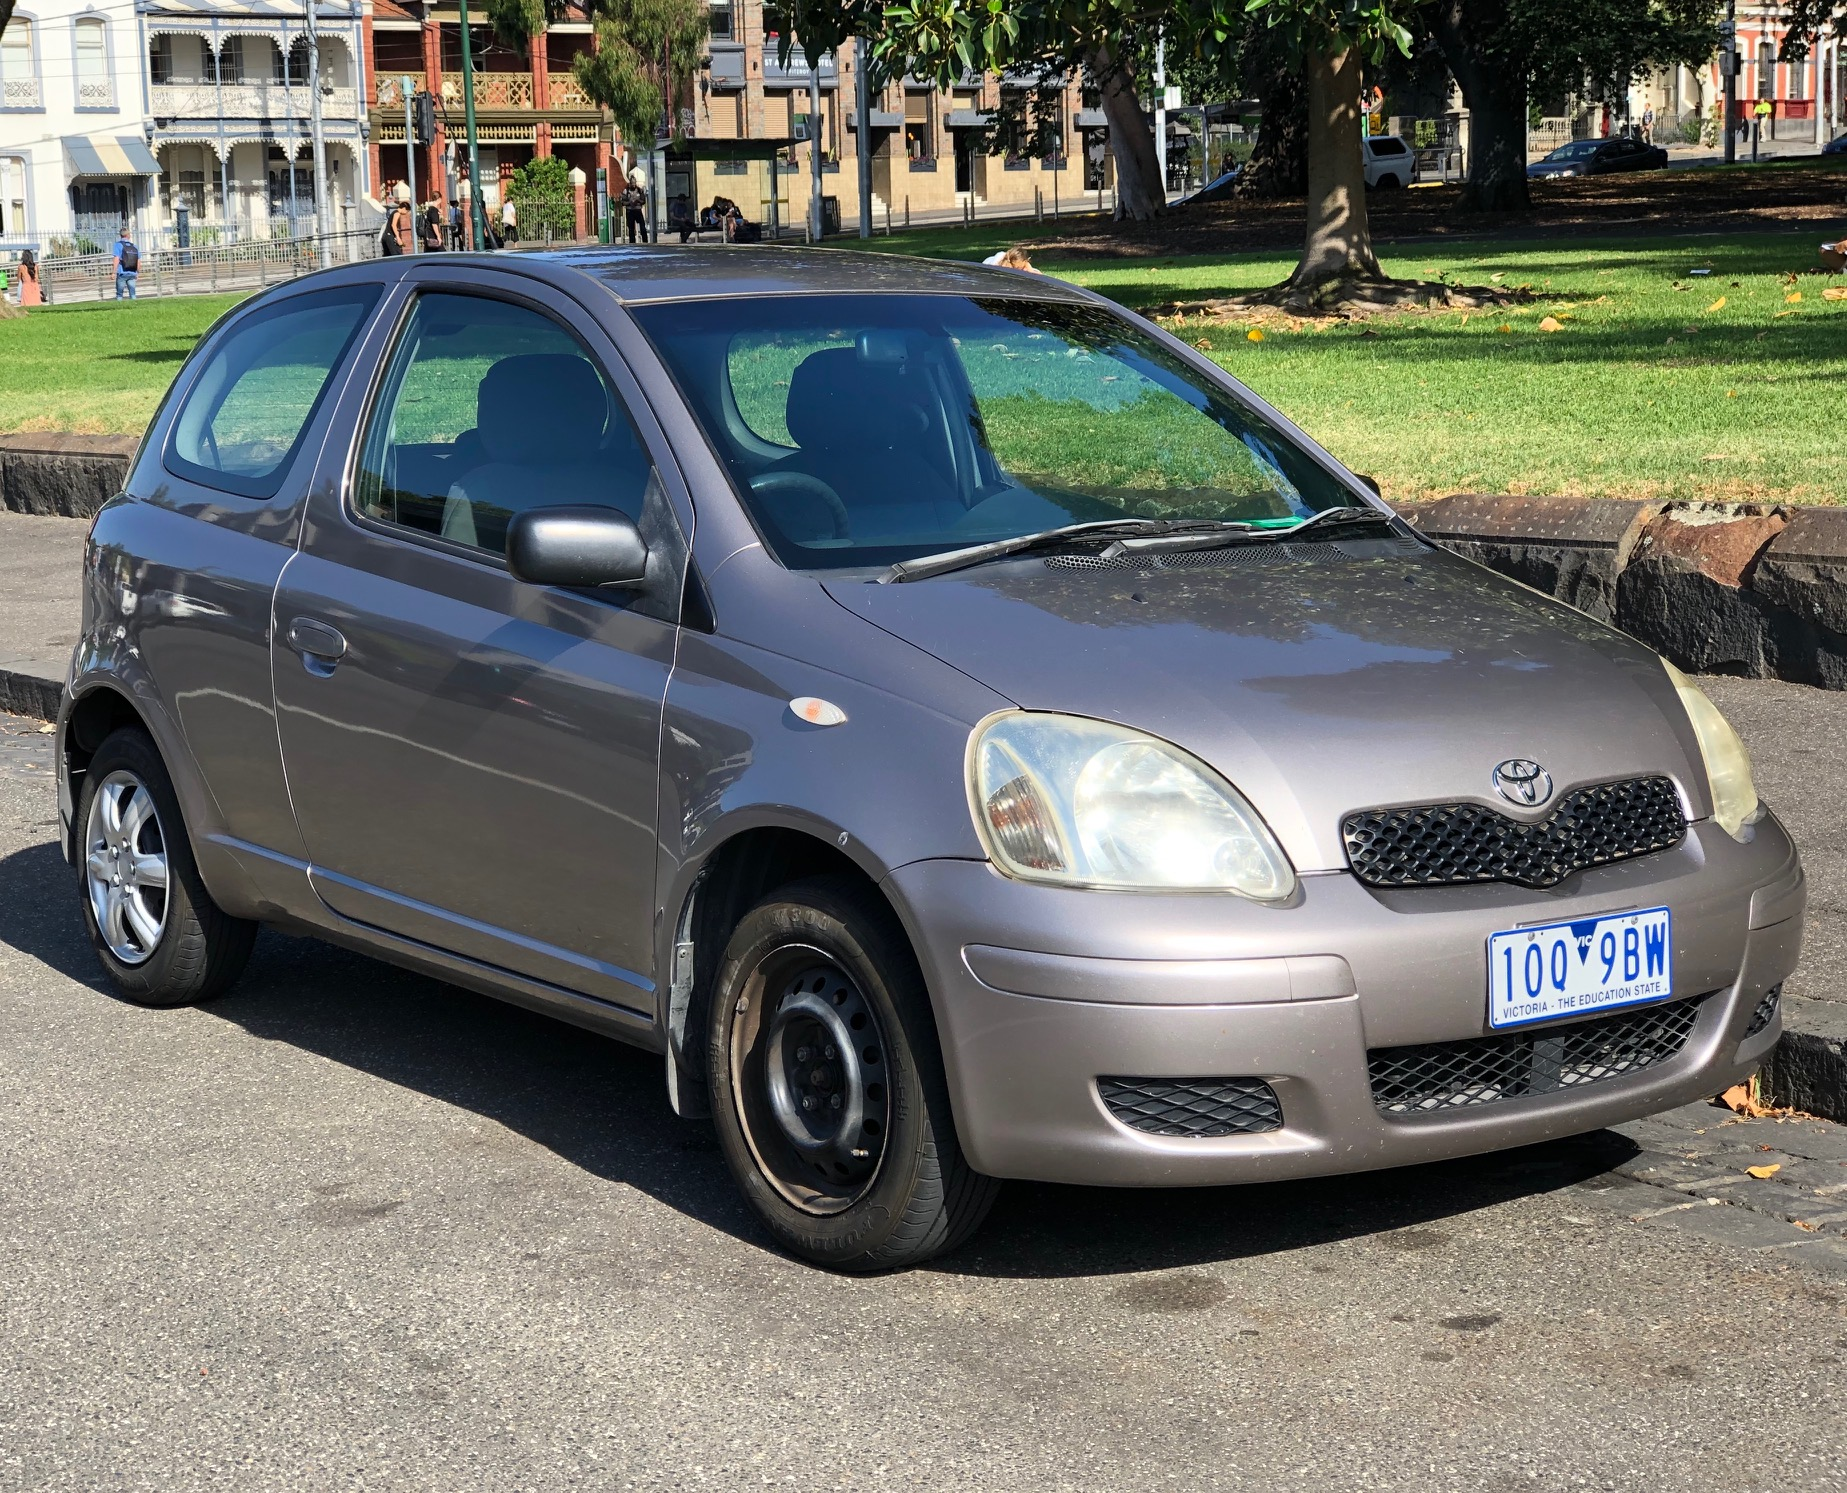 Picture of Imogen's 2003 Toyota Echo